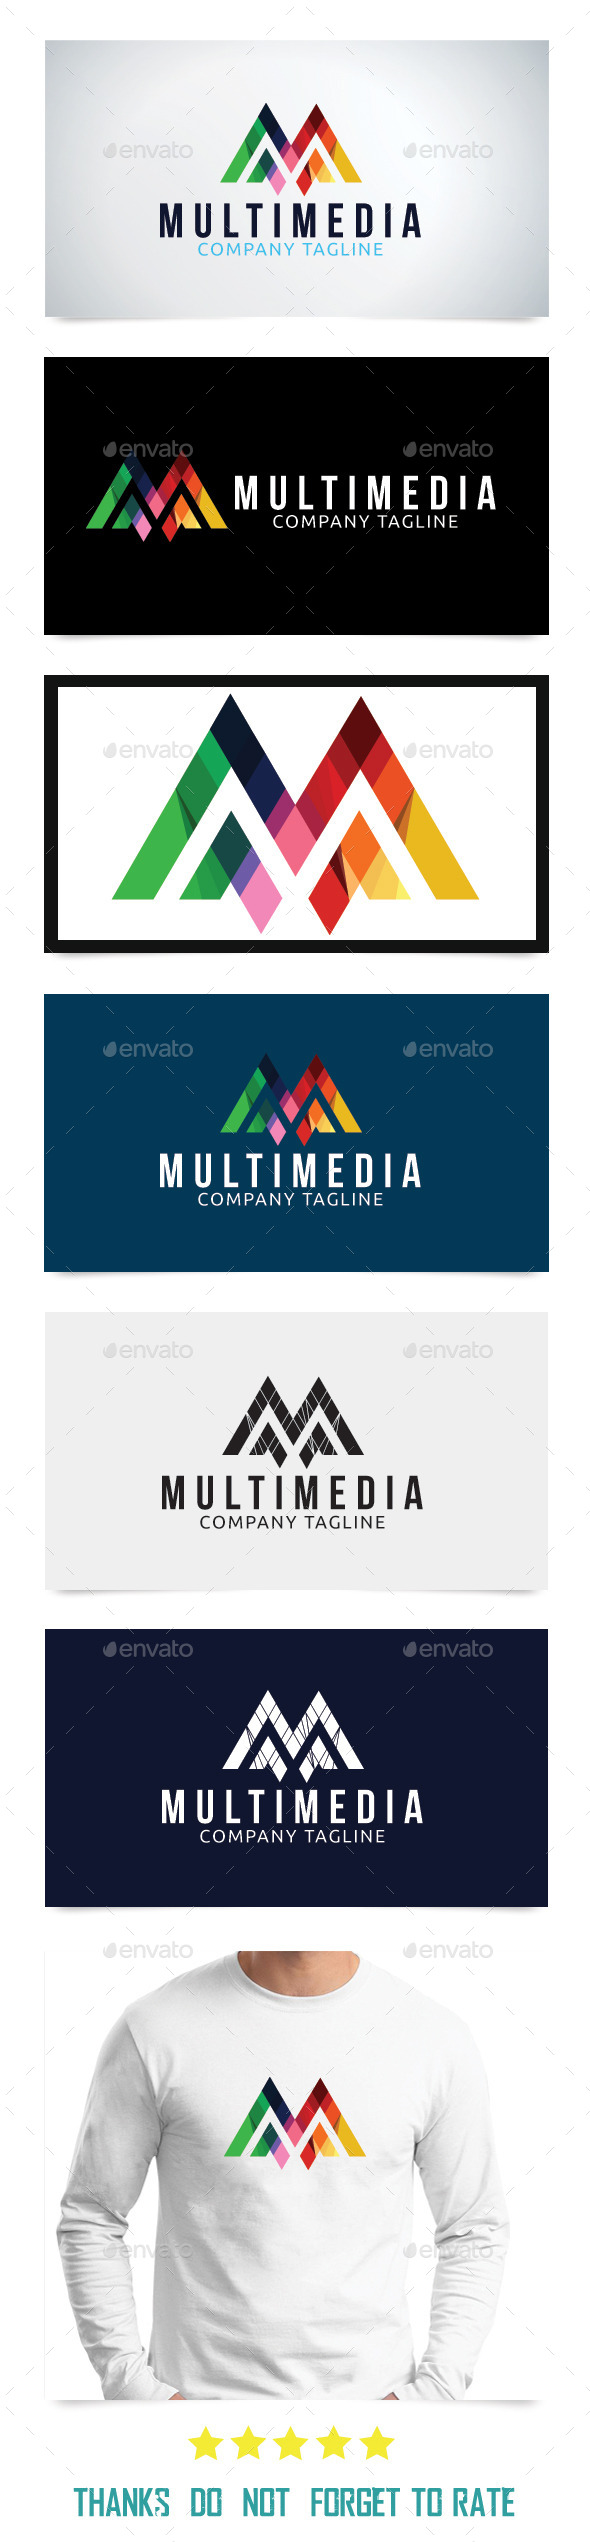 Multimedia Logo Template  - Abstract Logo Templates